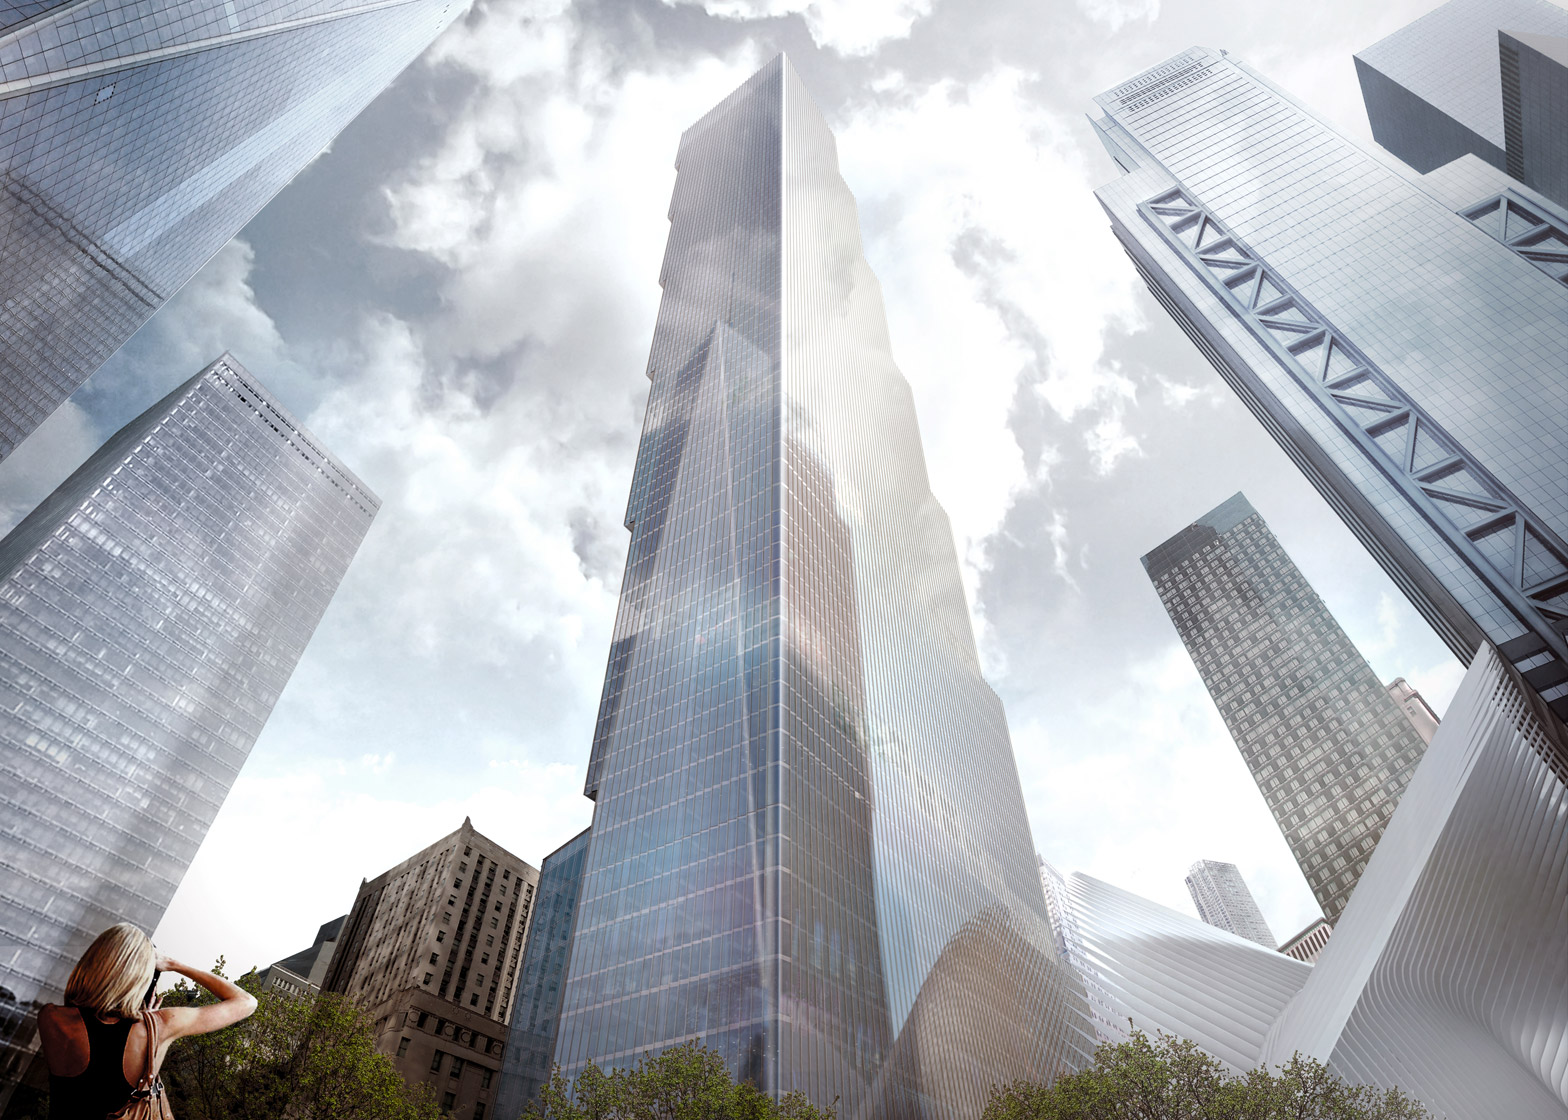 BIG 2 World Trade Center proposal in New York, USA